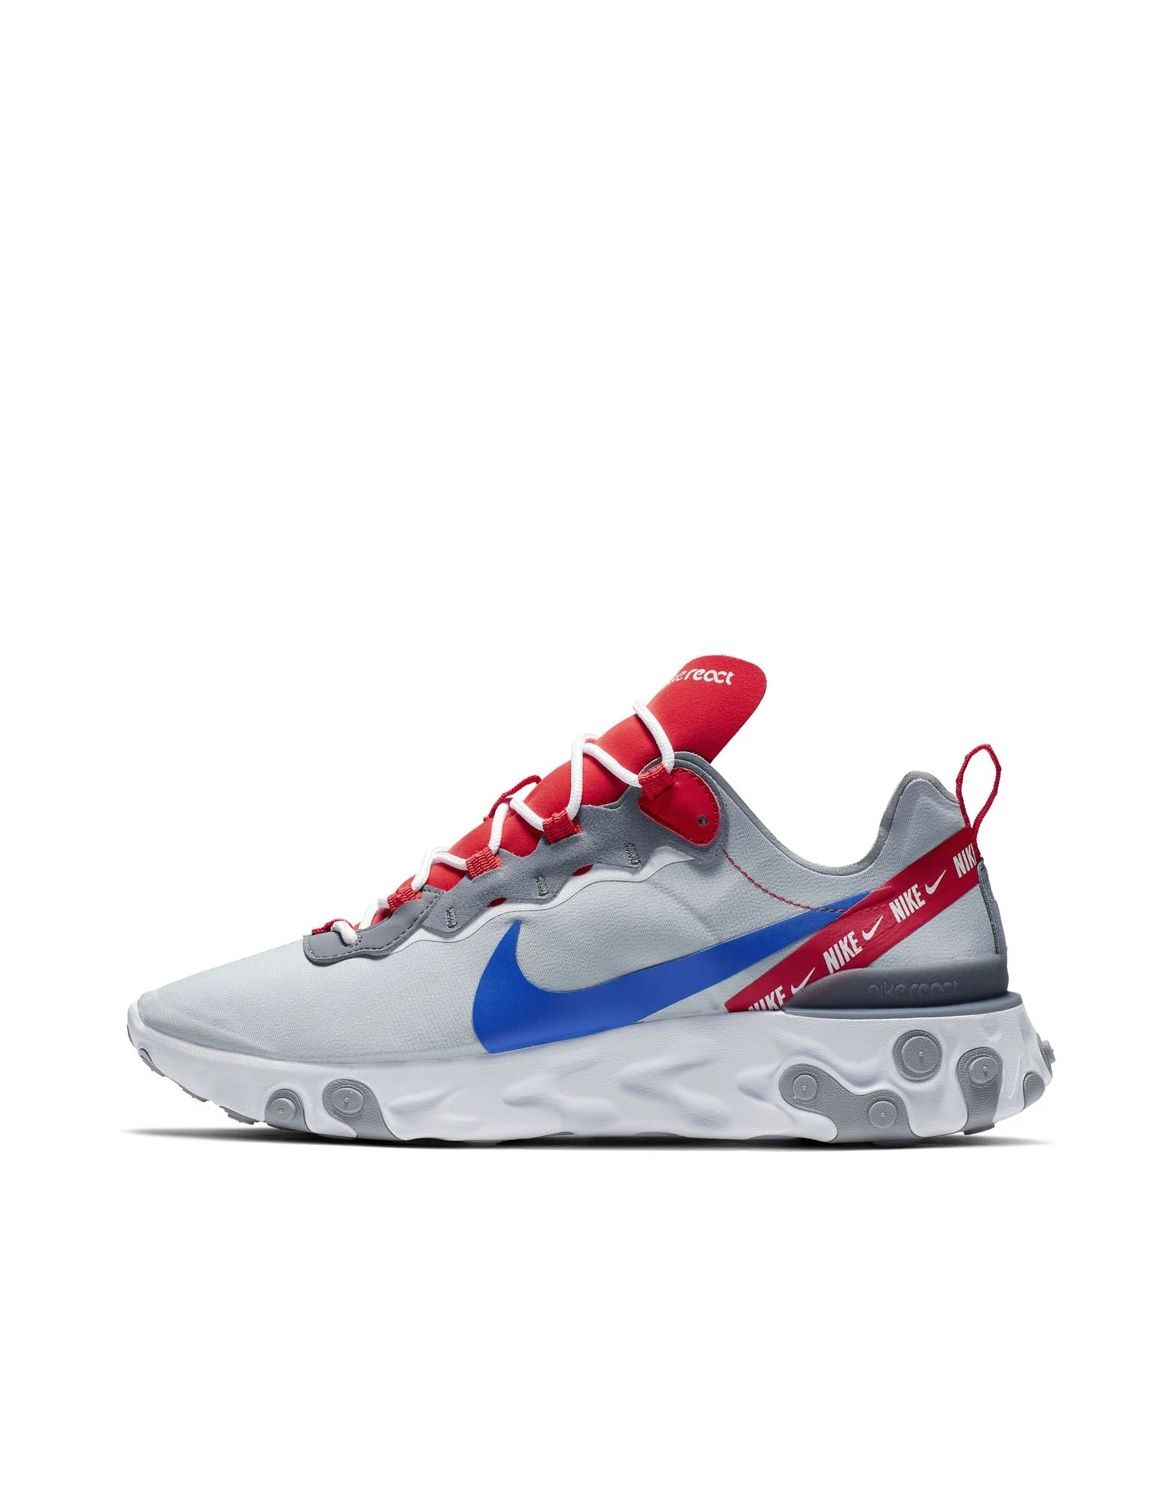 separation shoes c4143 97ded Nike React Element 55 Sneaker Heads, Nike Trainers, Sneakers Nike, Sports  Shoes,